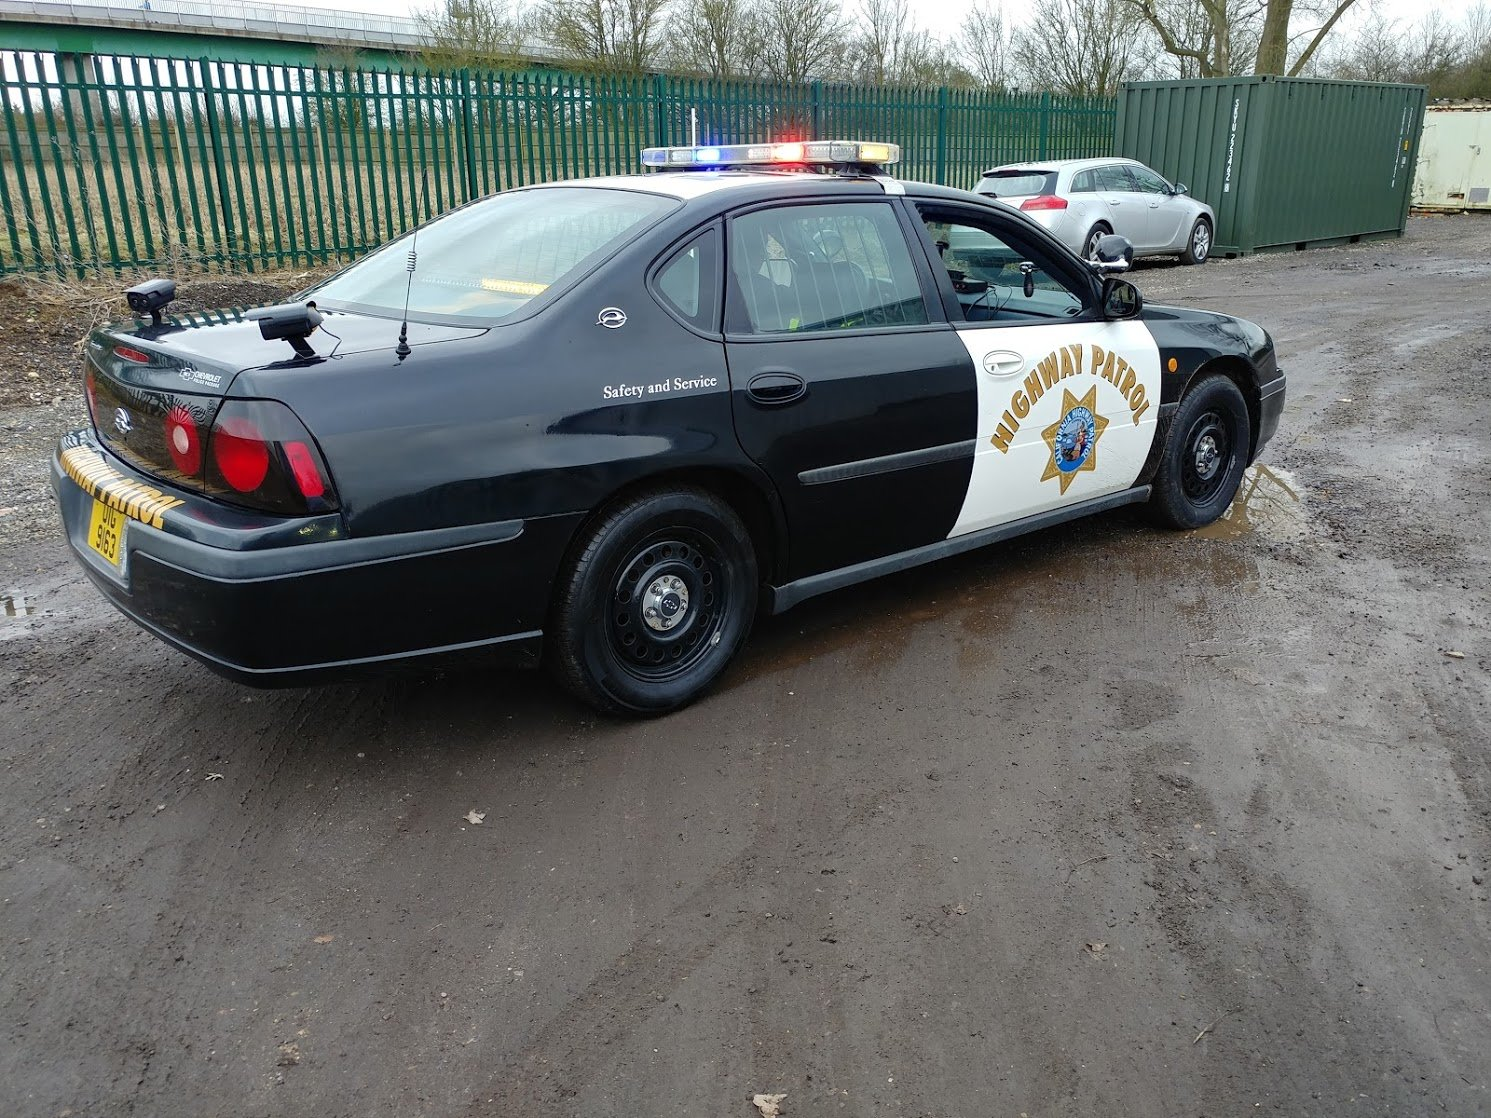 Cop Cars For Sale >> 2004 Chevrolet Impala Police 9c1 Chp Cop Car For Sale Car